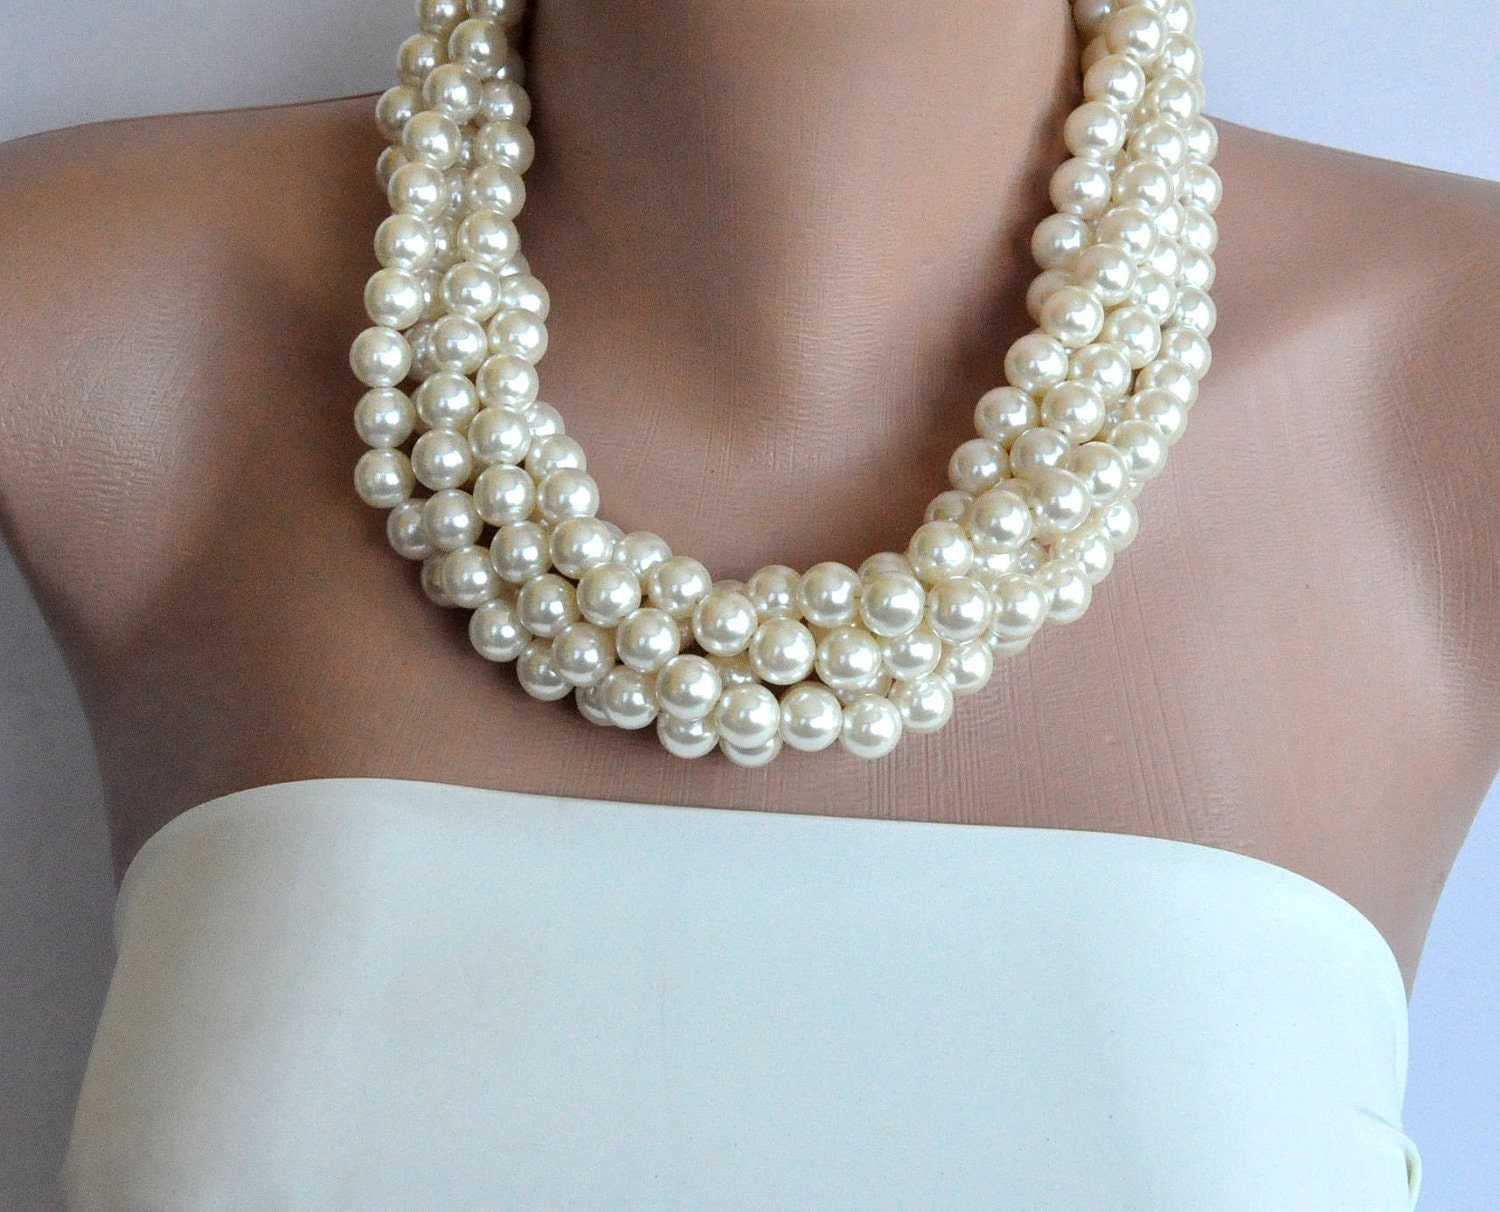 6 Bridesmaids Gift Necklaces ivory pearls for wedding Bridesmaids Gifts  Ivory Pearl Necklaces